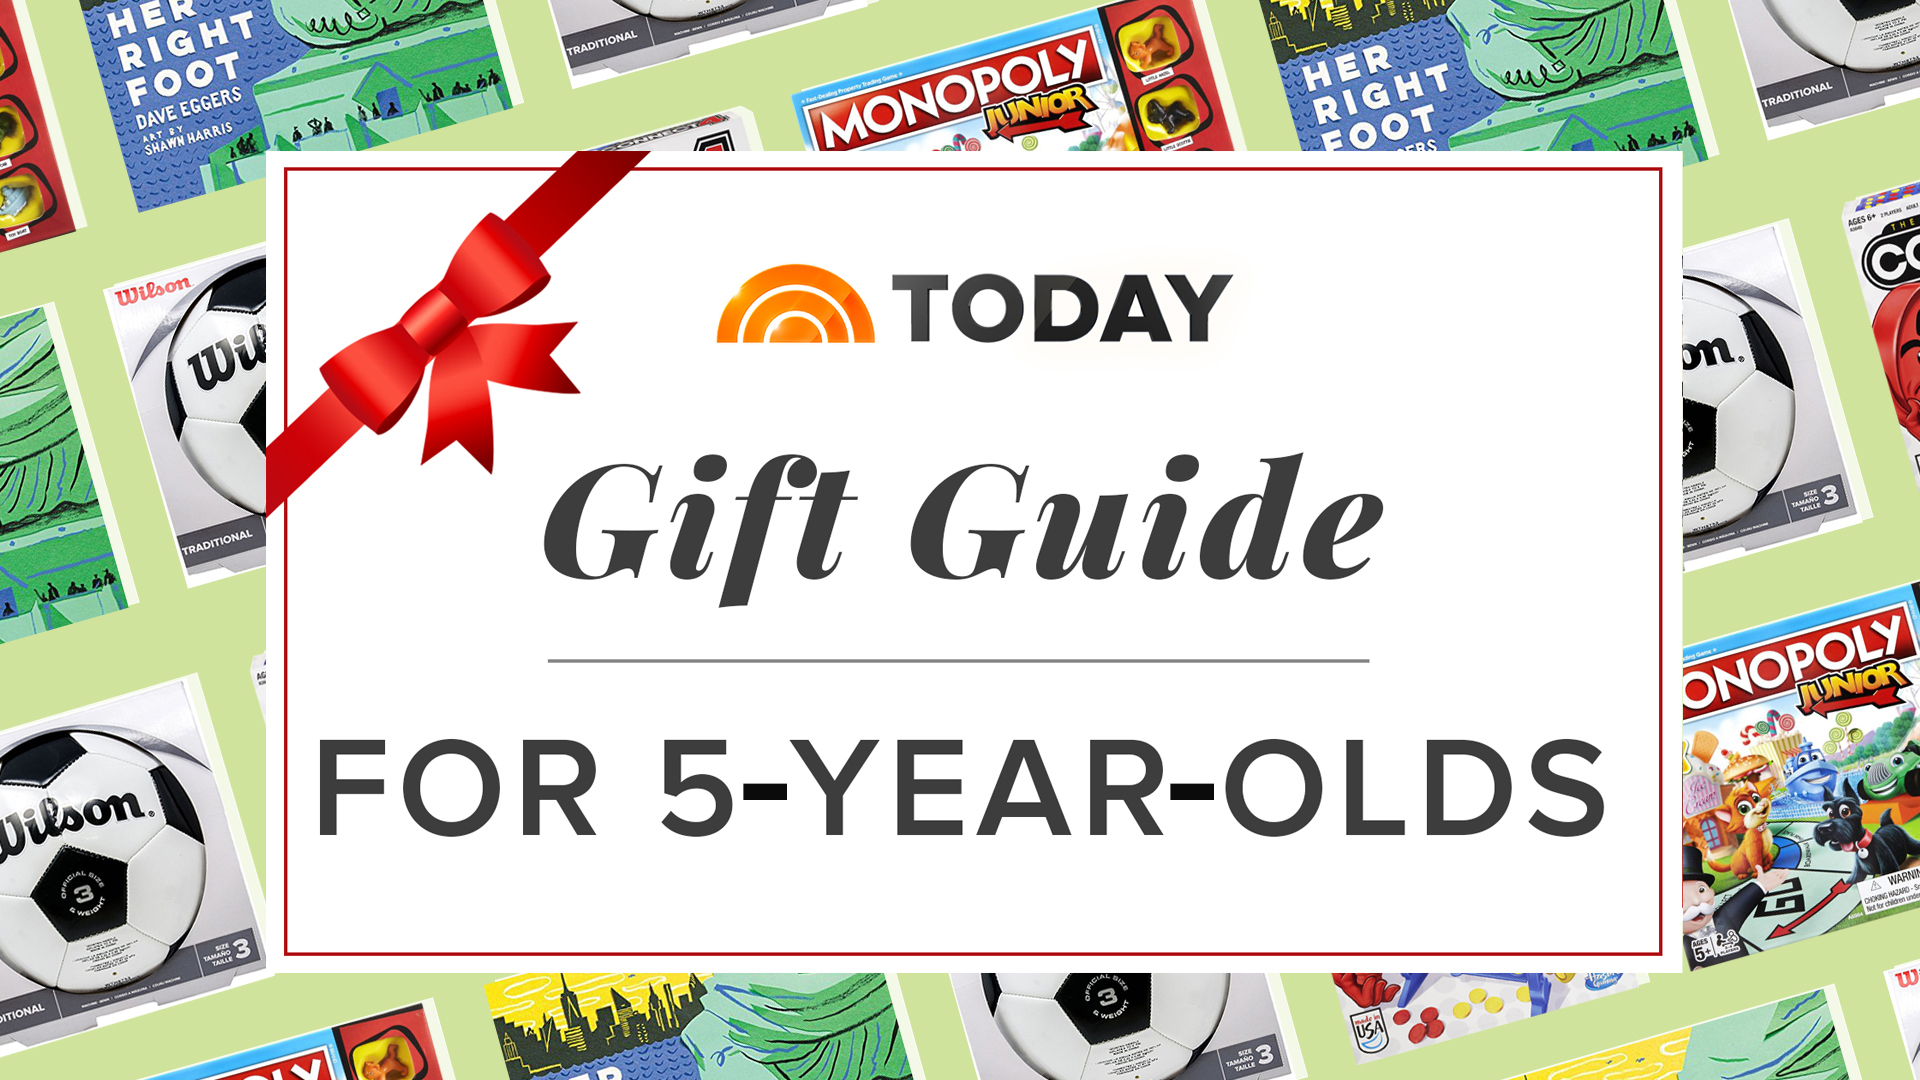 Best Gifts For 5-year-olds From Our 2017 Holiday Gift